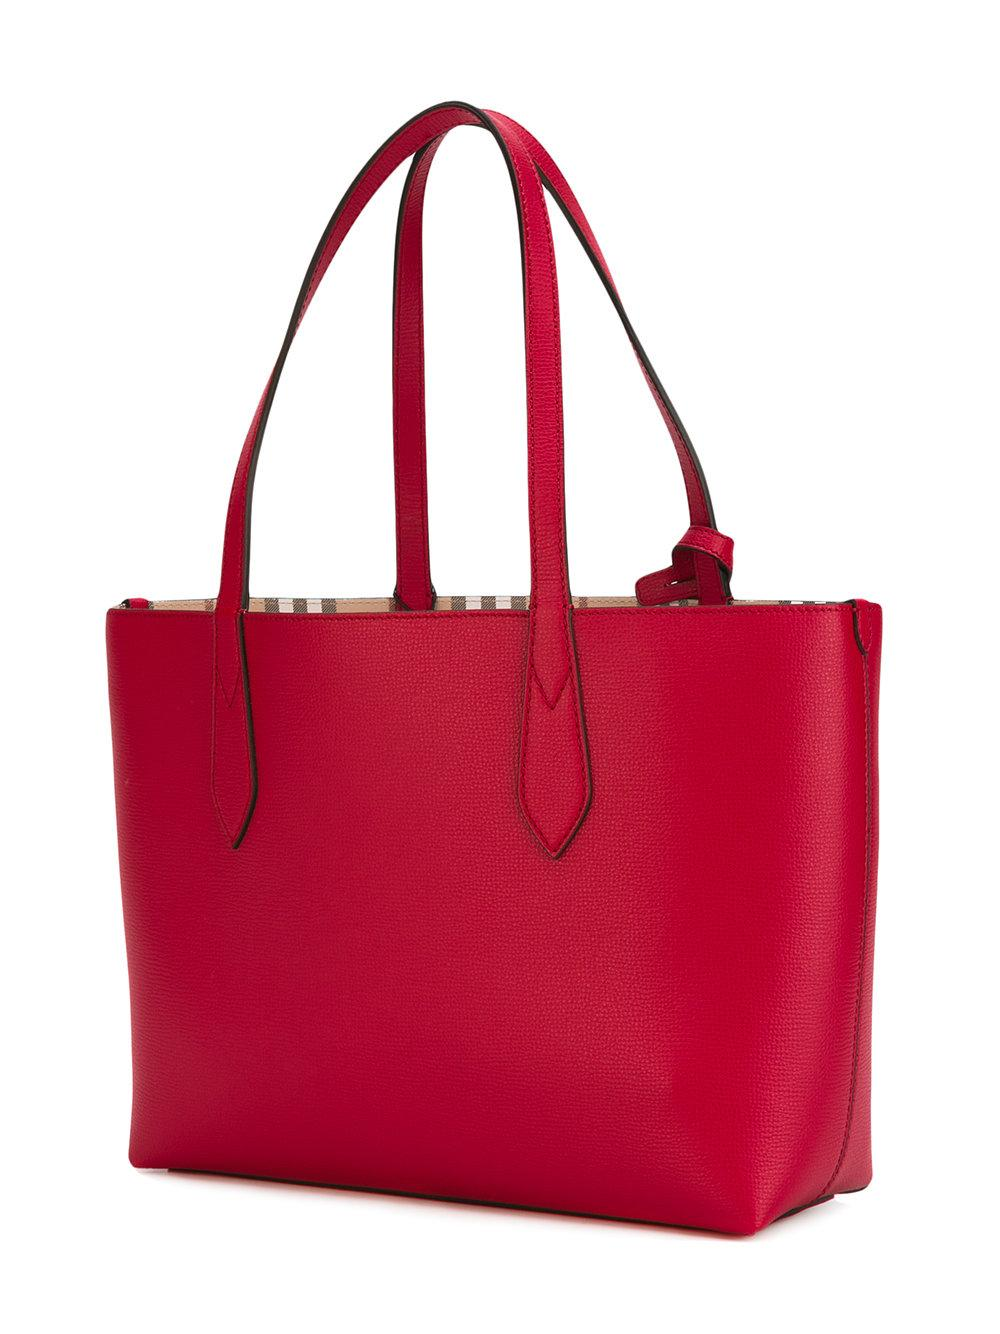 4267c8b71cca Lyst - Burberry Lavenby Small Bag in Red